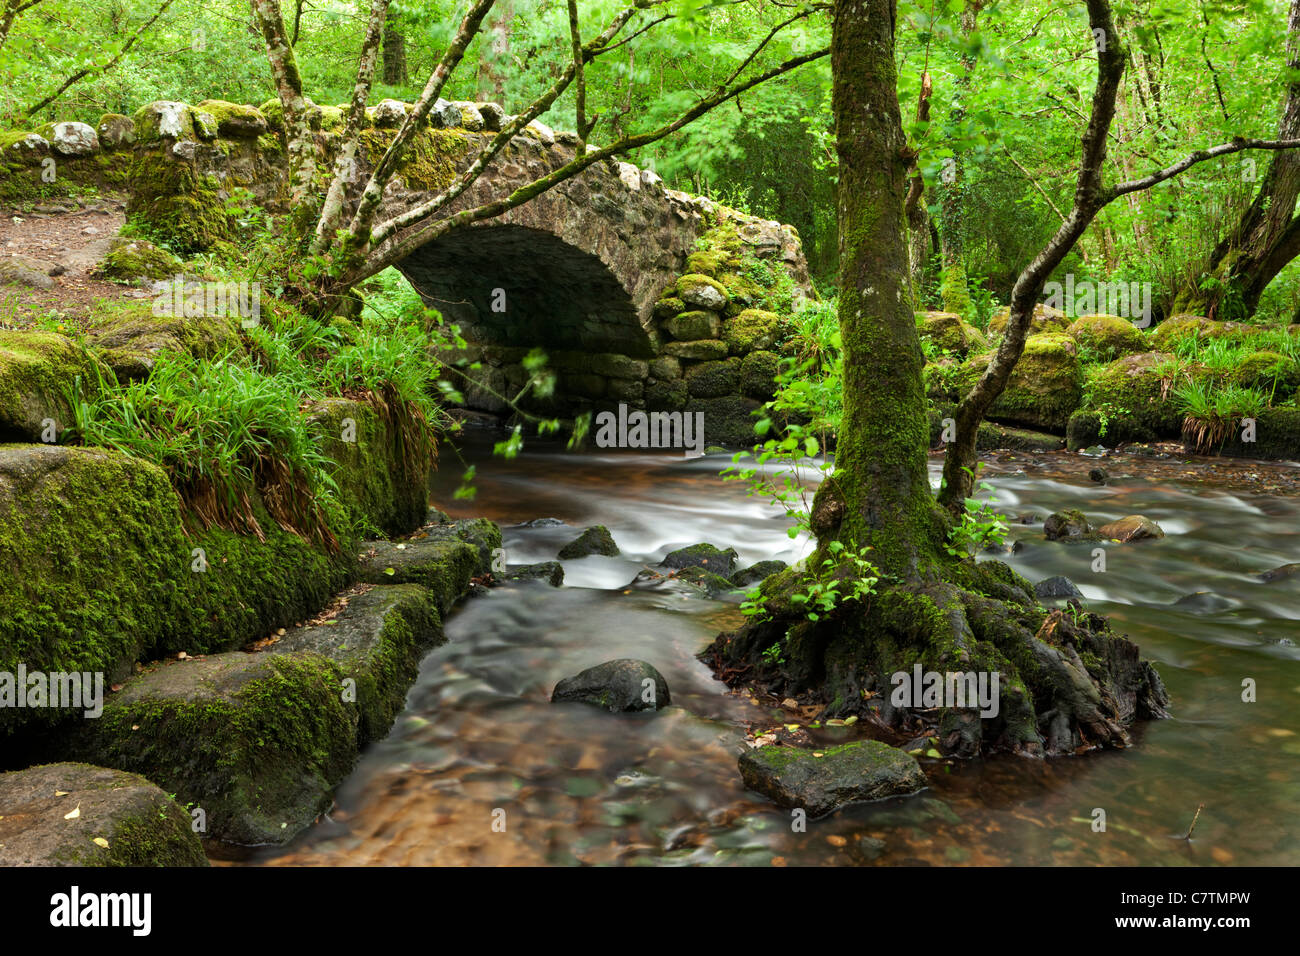 Medieval Hisley Bridge spanning the River Bovey in Hisley Wood, Dartmoor, Devon, England. Summer (July) 2011. - Stock Image